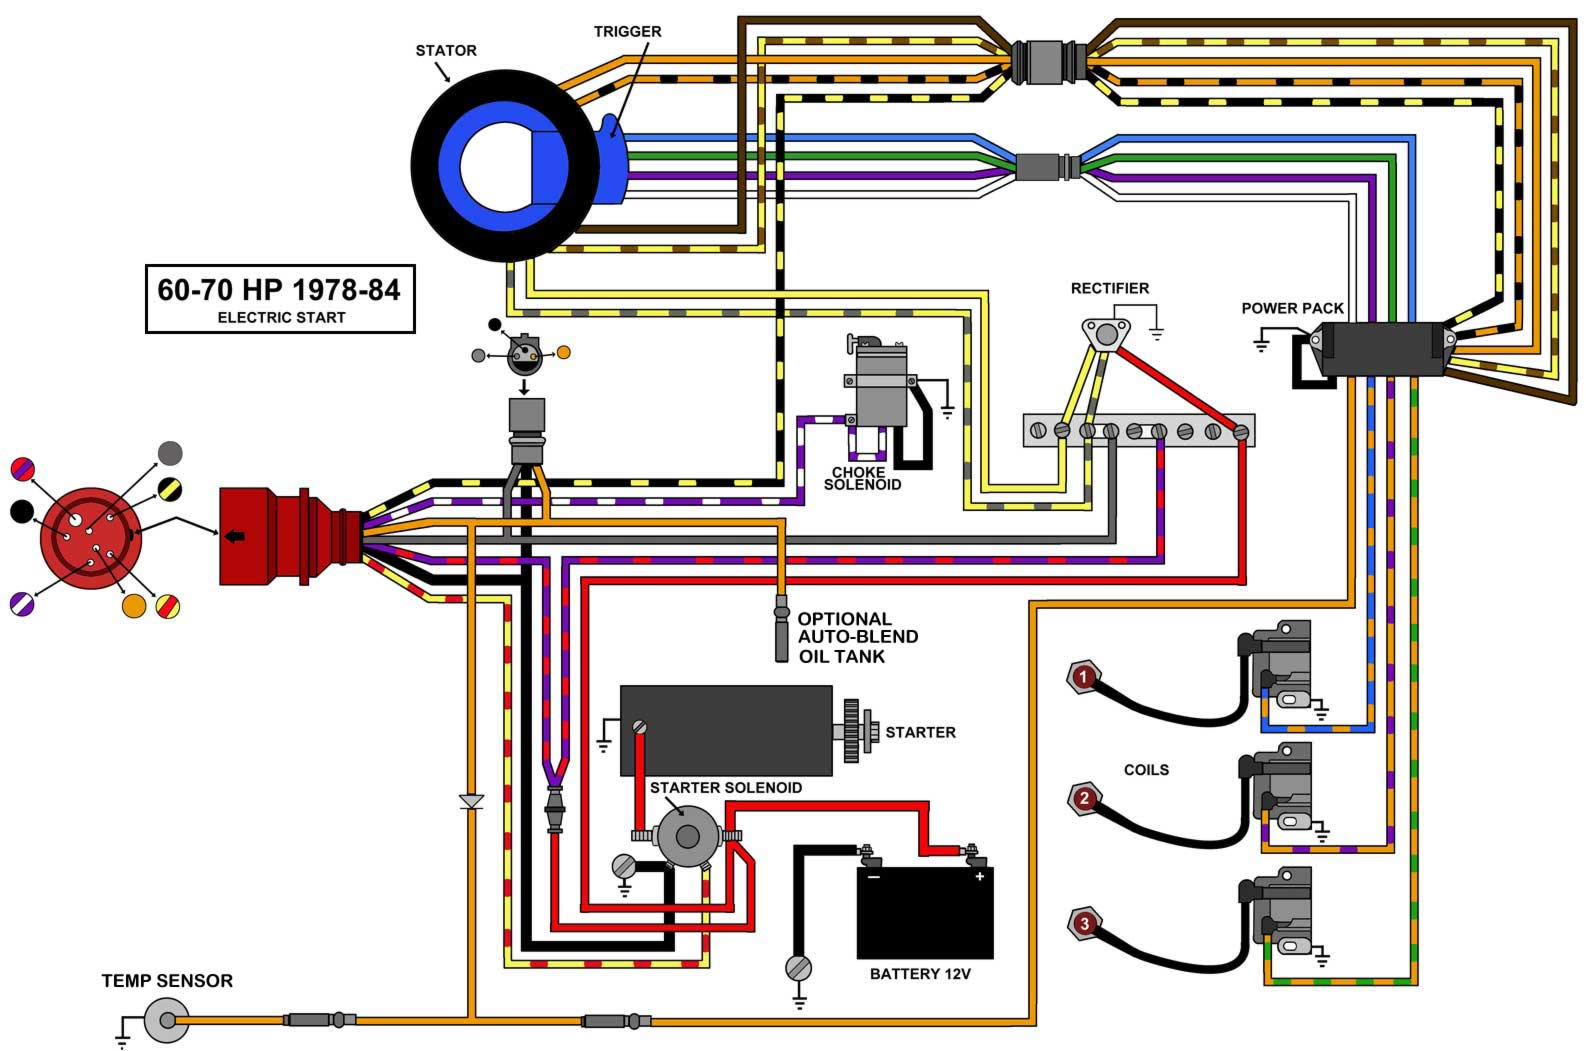 78 84_3 CYL_EL wiring diagram for johnson tilt and trim wiring wiring diagrams  at honlapkeszites.co